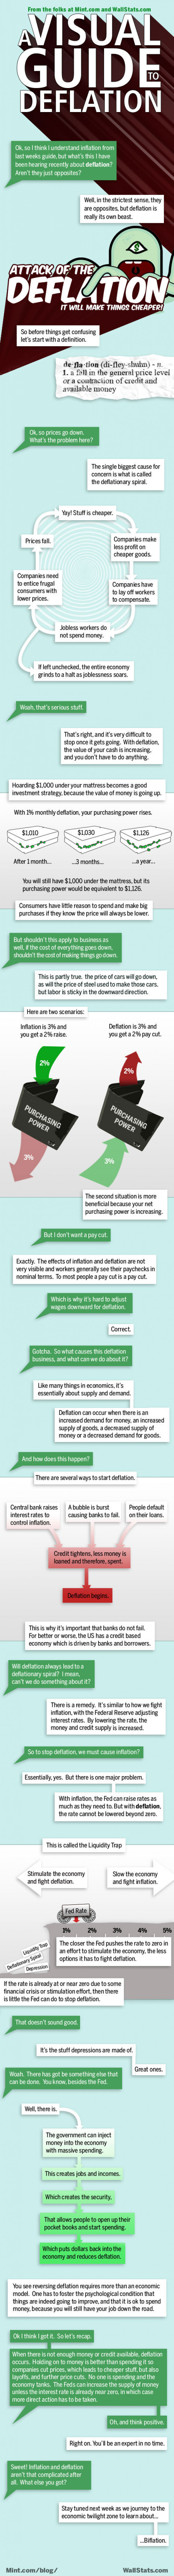 A Visual Guide to Deflation